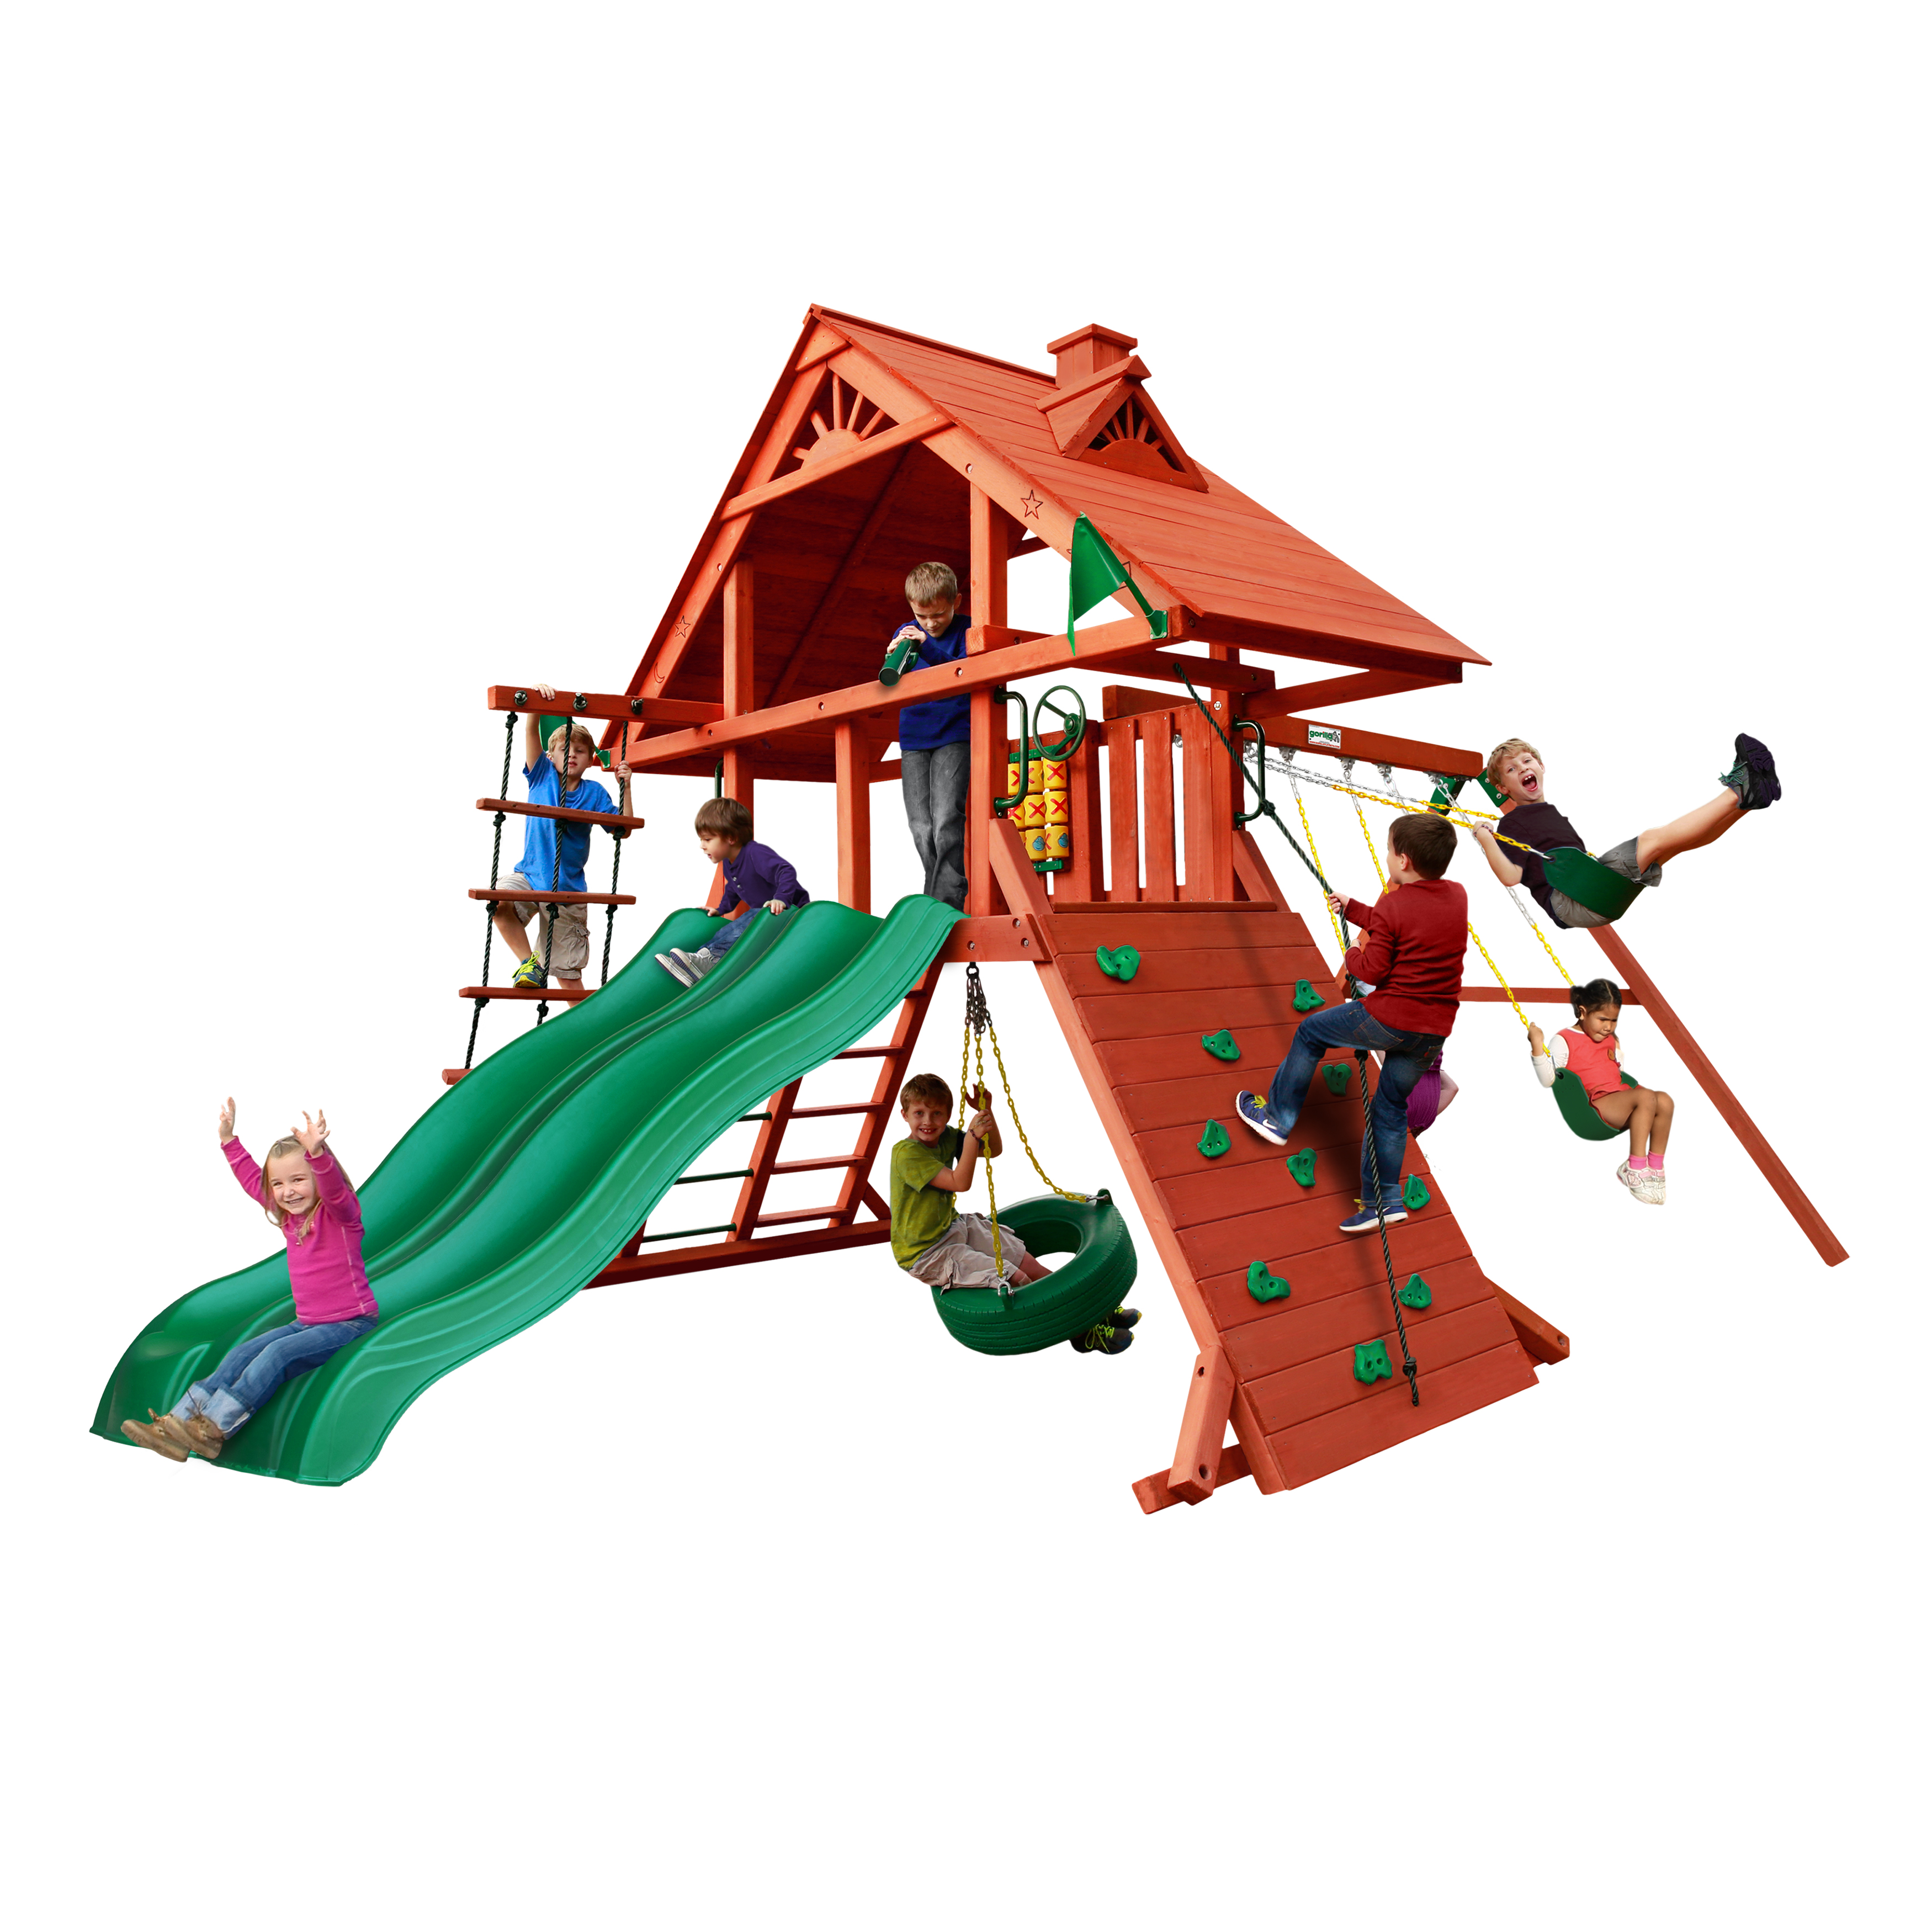 Gorilla Playsets Sun Palace Extreme Wooden Swing Set With 2 Slides